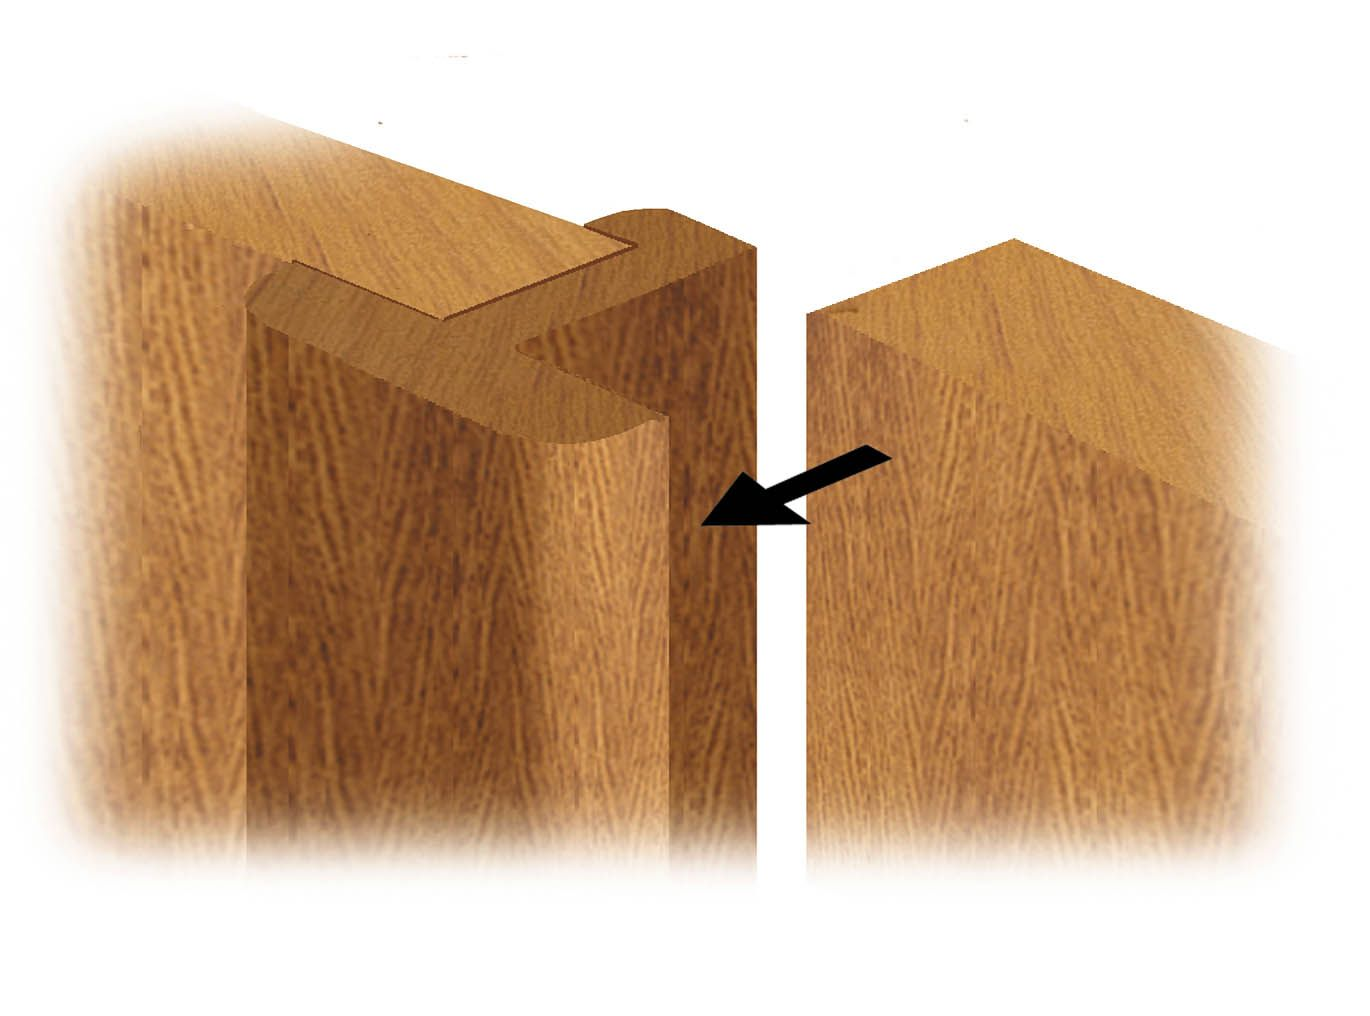 Use your Imagination to create something unique with a Door Pair ...